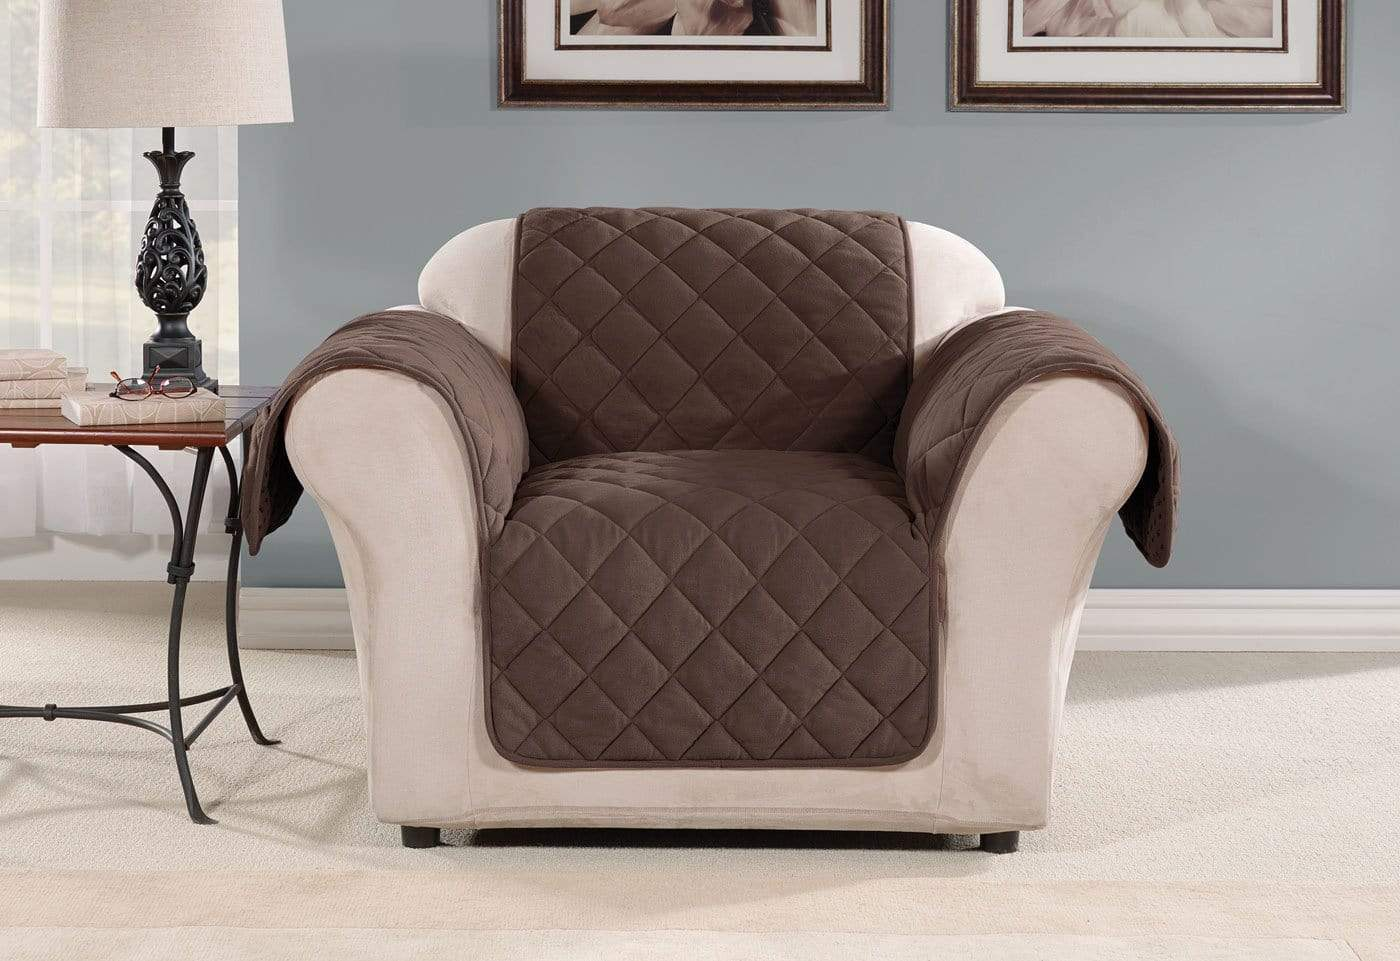 Oversized Microfleece Chair Furniture Cover Pet Furniture Cover Machine Washable - Chair / Chocolate